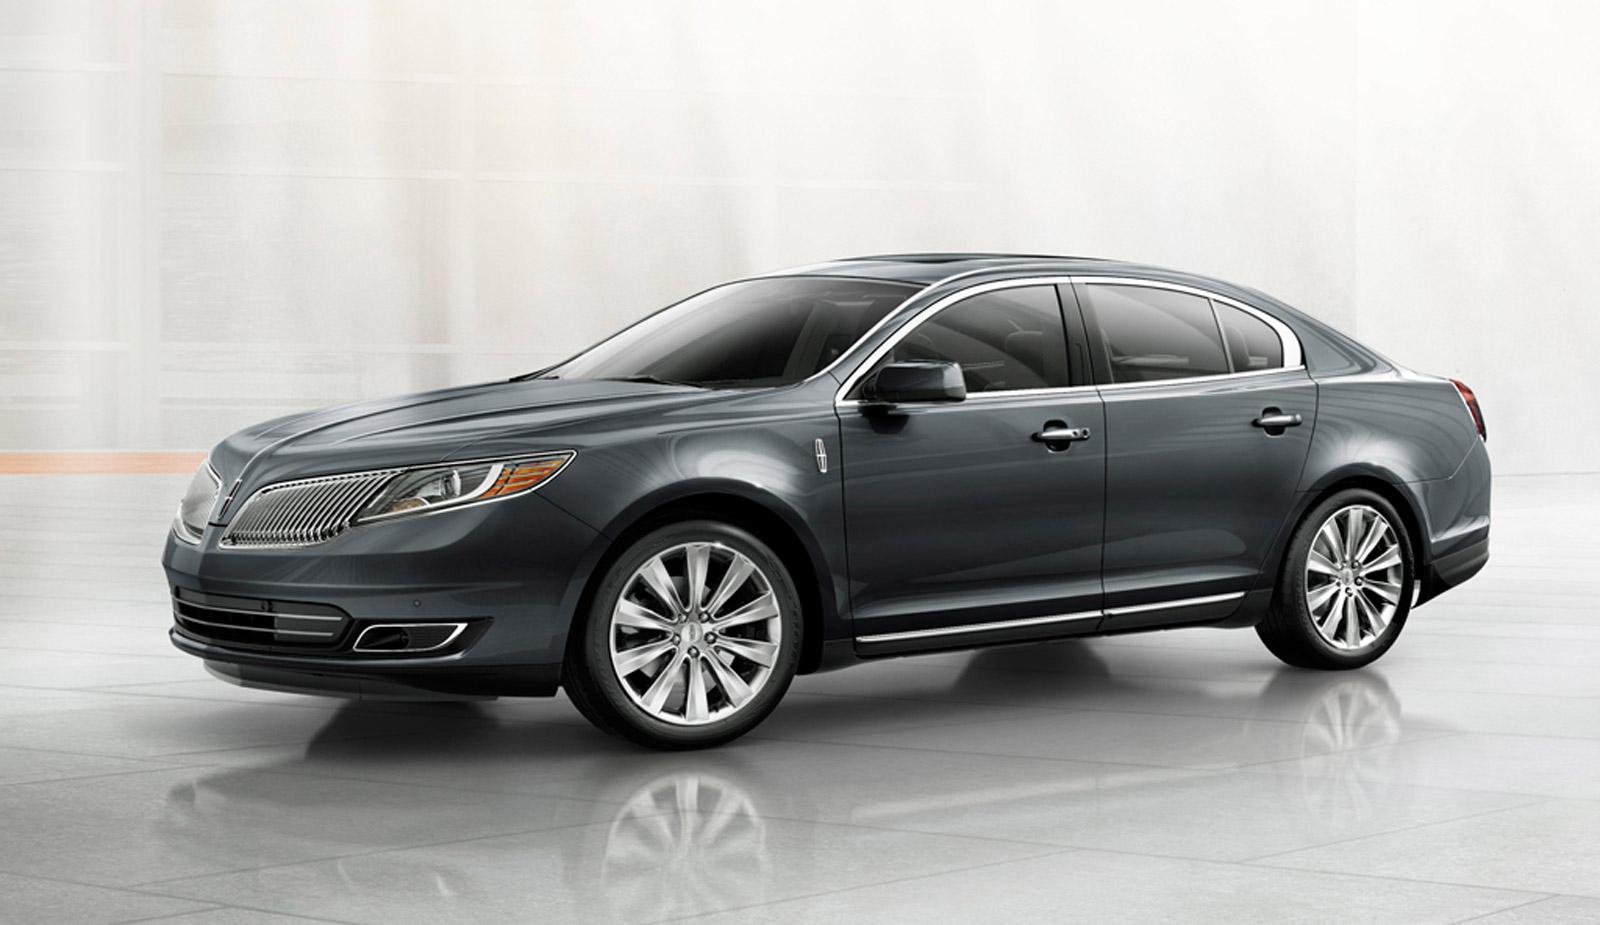 2014 Lincoln Mkz #2